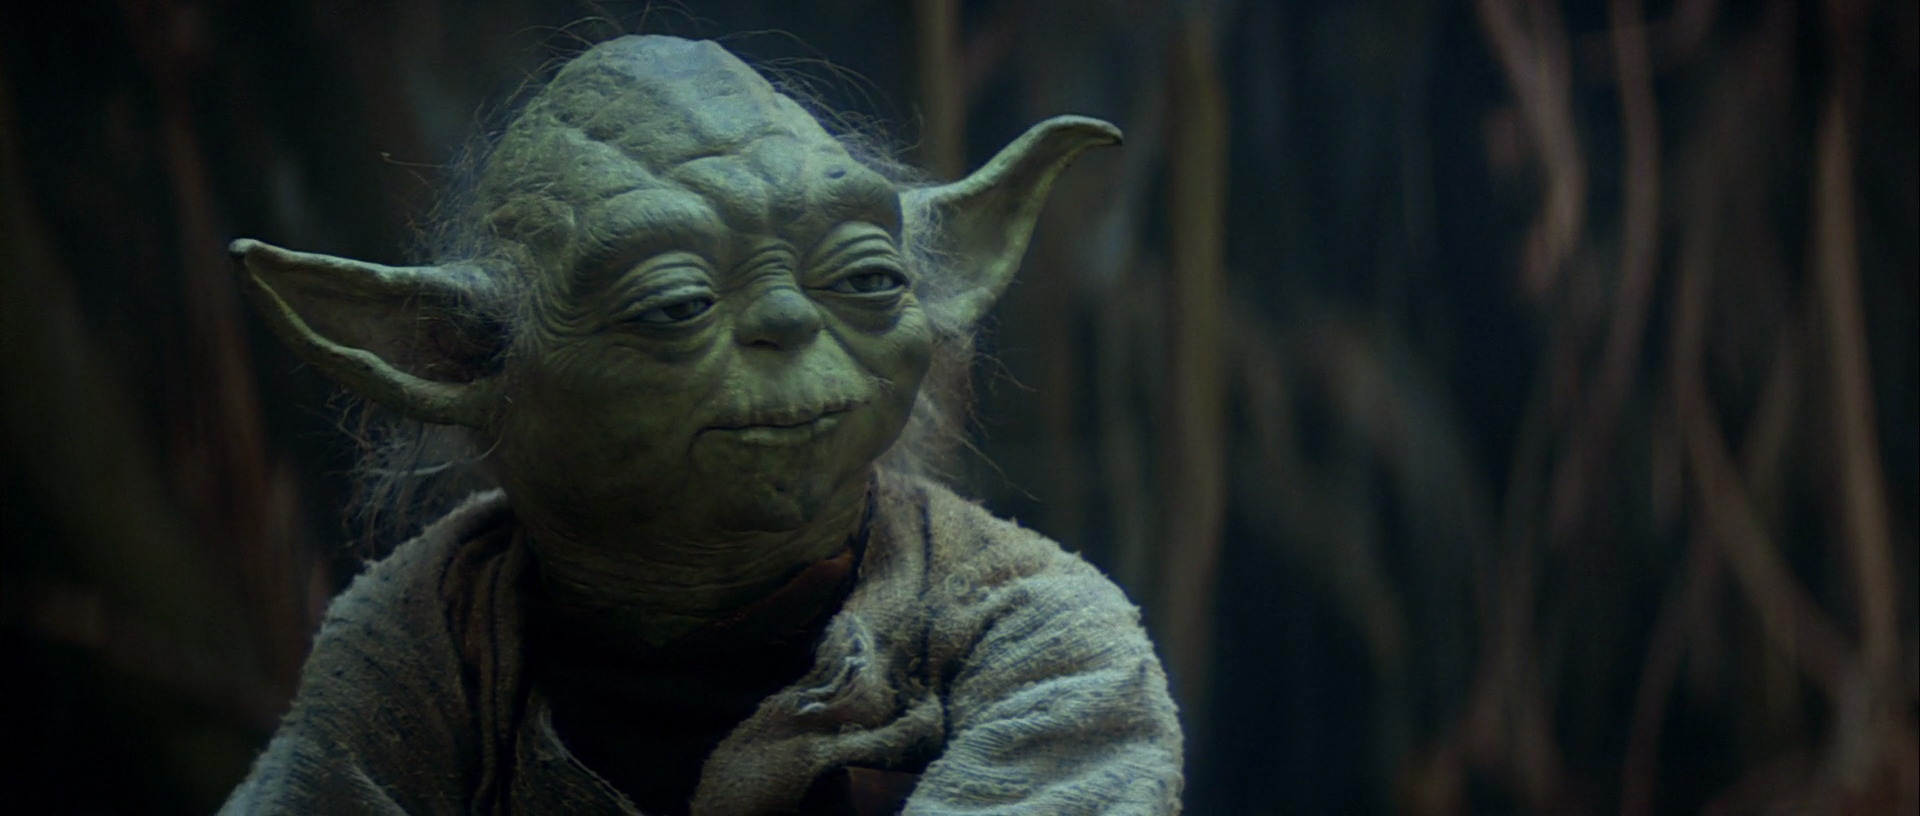 Mental Toughness Tips From Star Wars Yoda That Engineers Can Learn From